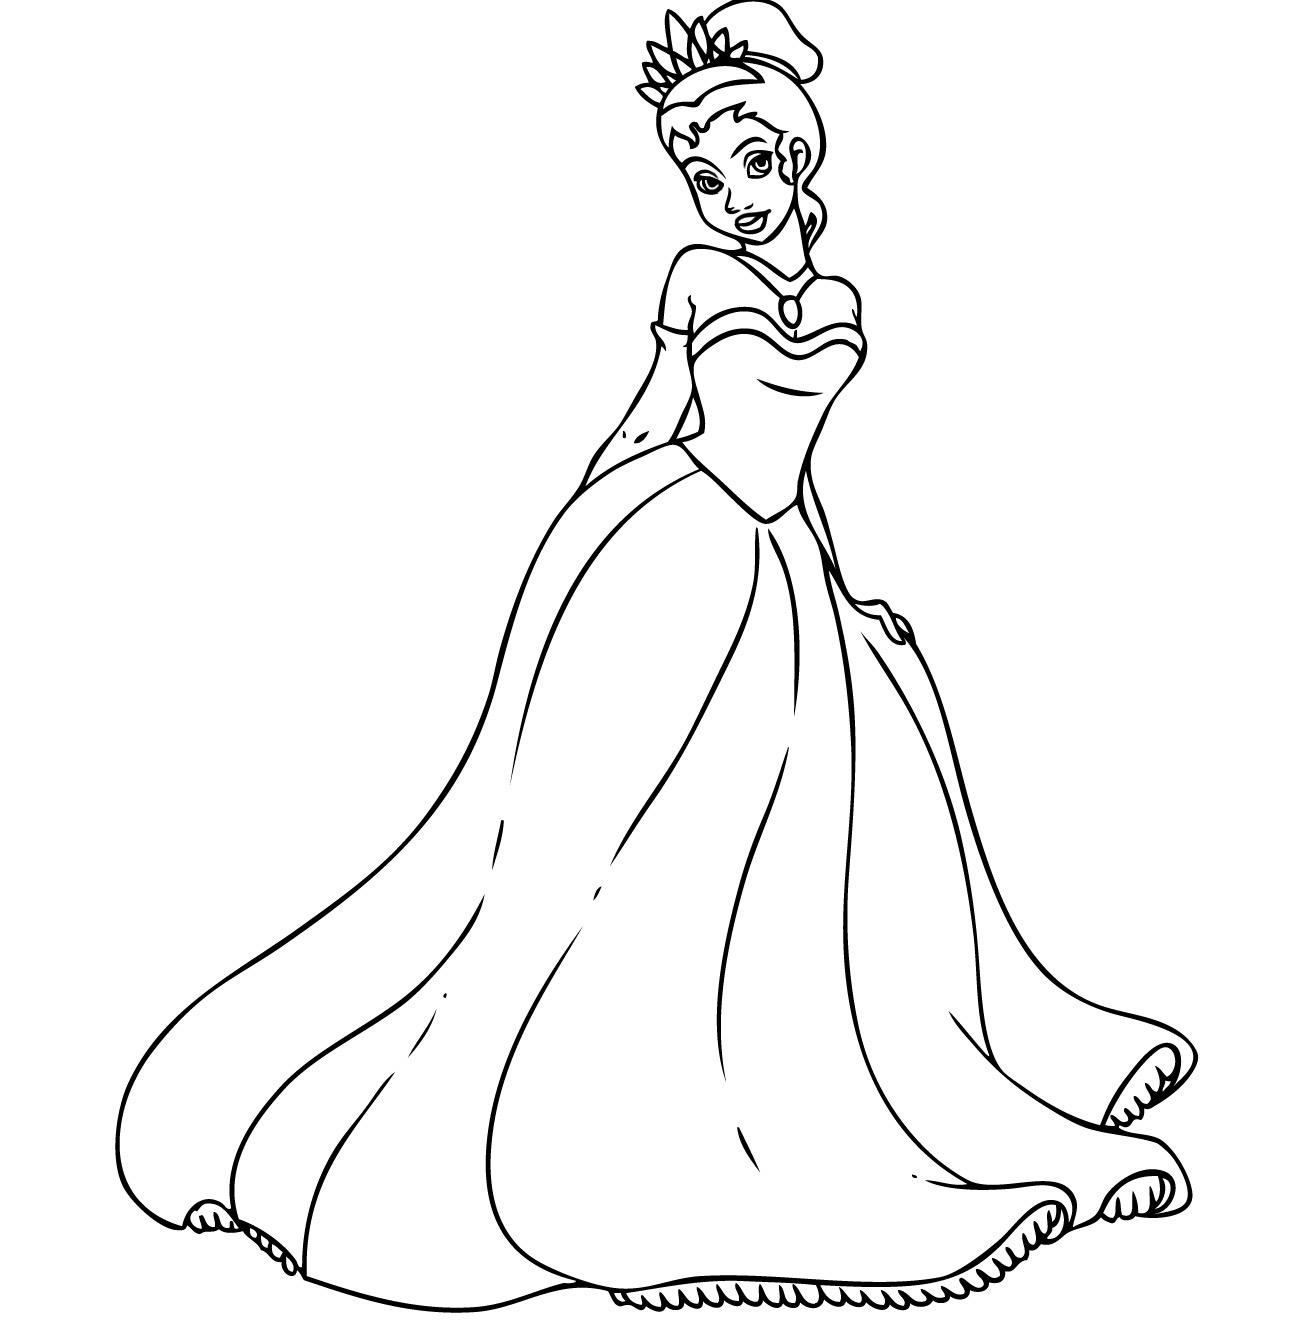 coloring pages of princess tiana - Coloring Pages Princess